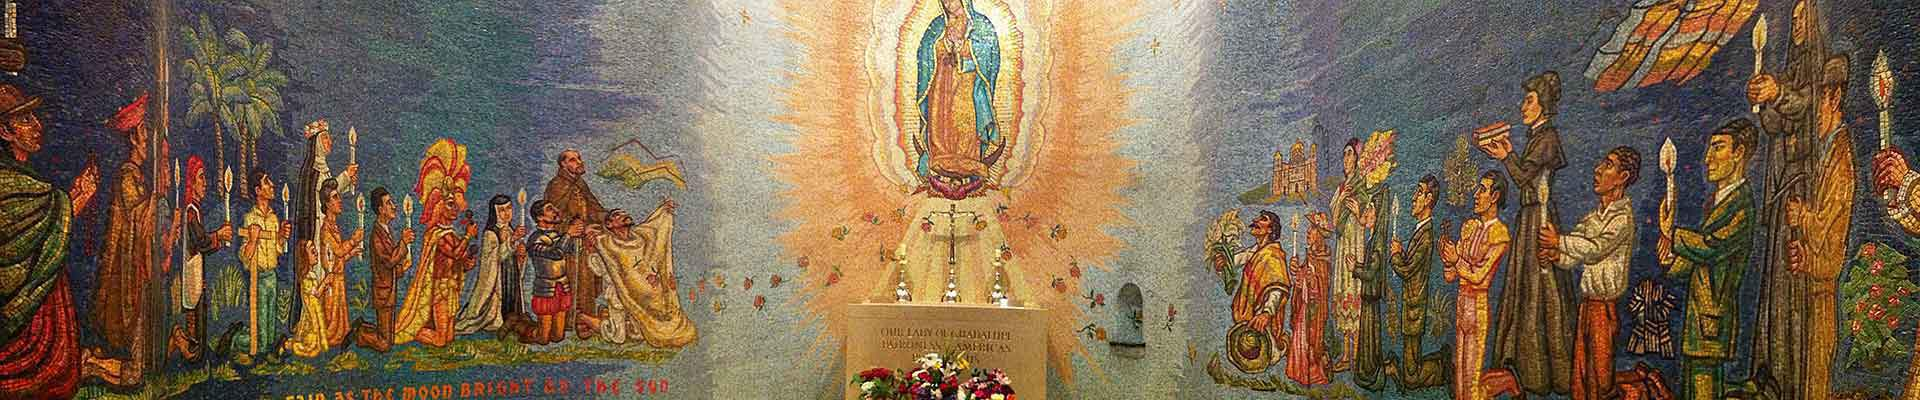 our-lady-of-guadalupe los cabos